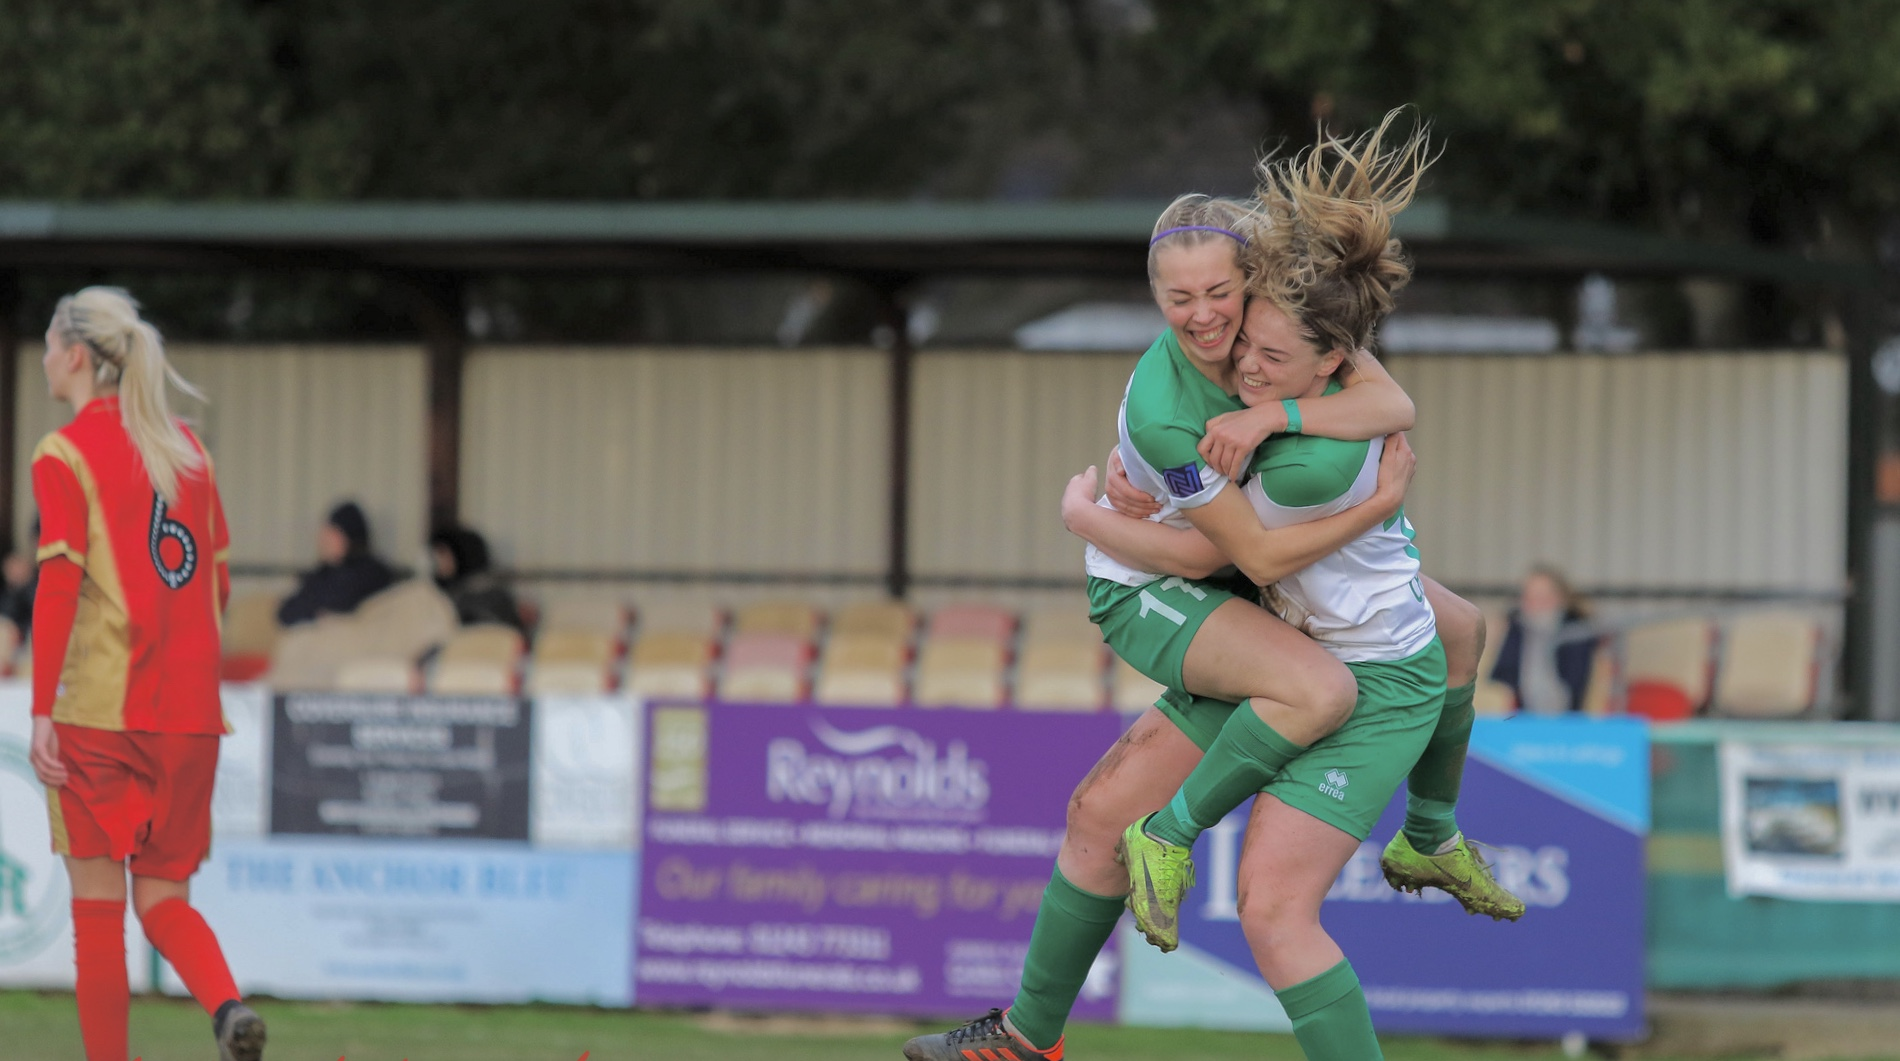 Tash Stephens and Sara Tubby celebrate during Chichester City versus MK Dons. Photo: Sheena Booker